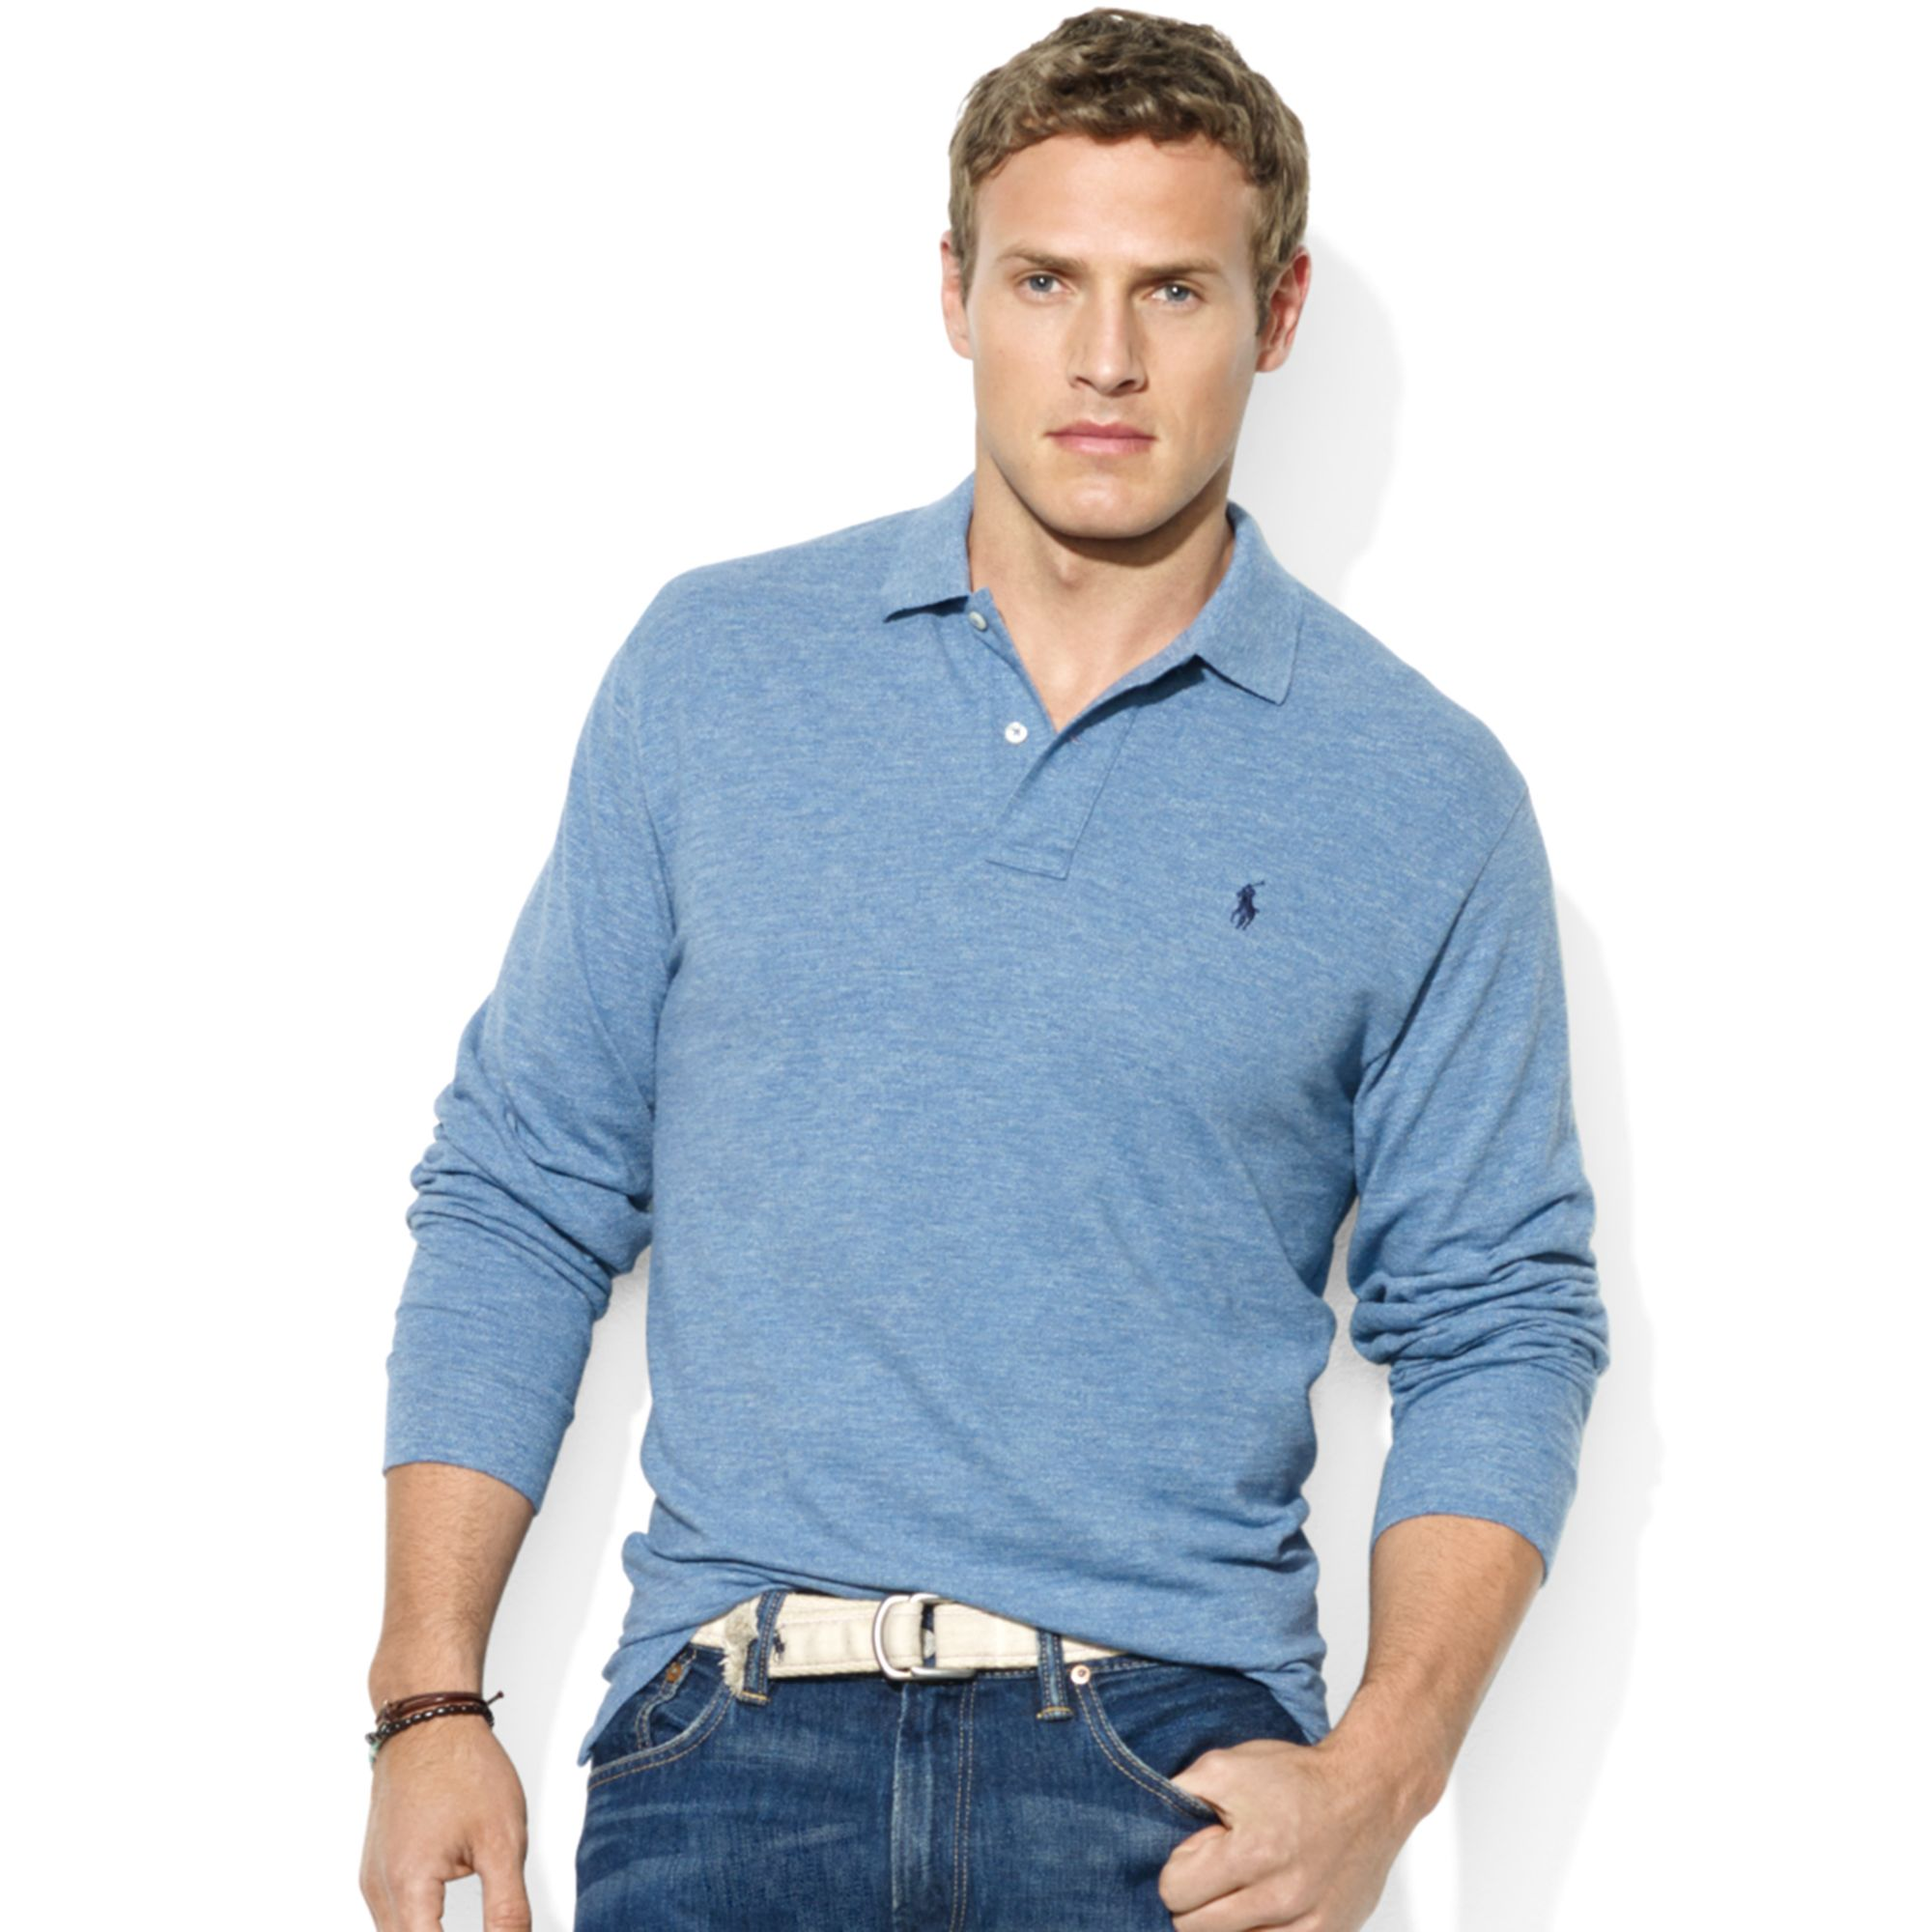 polo ralph lauren classic fit mesh polo long sleeve .